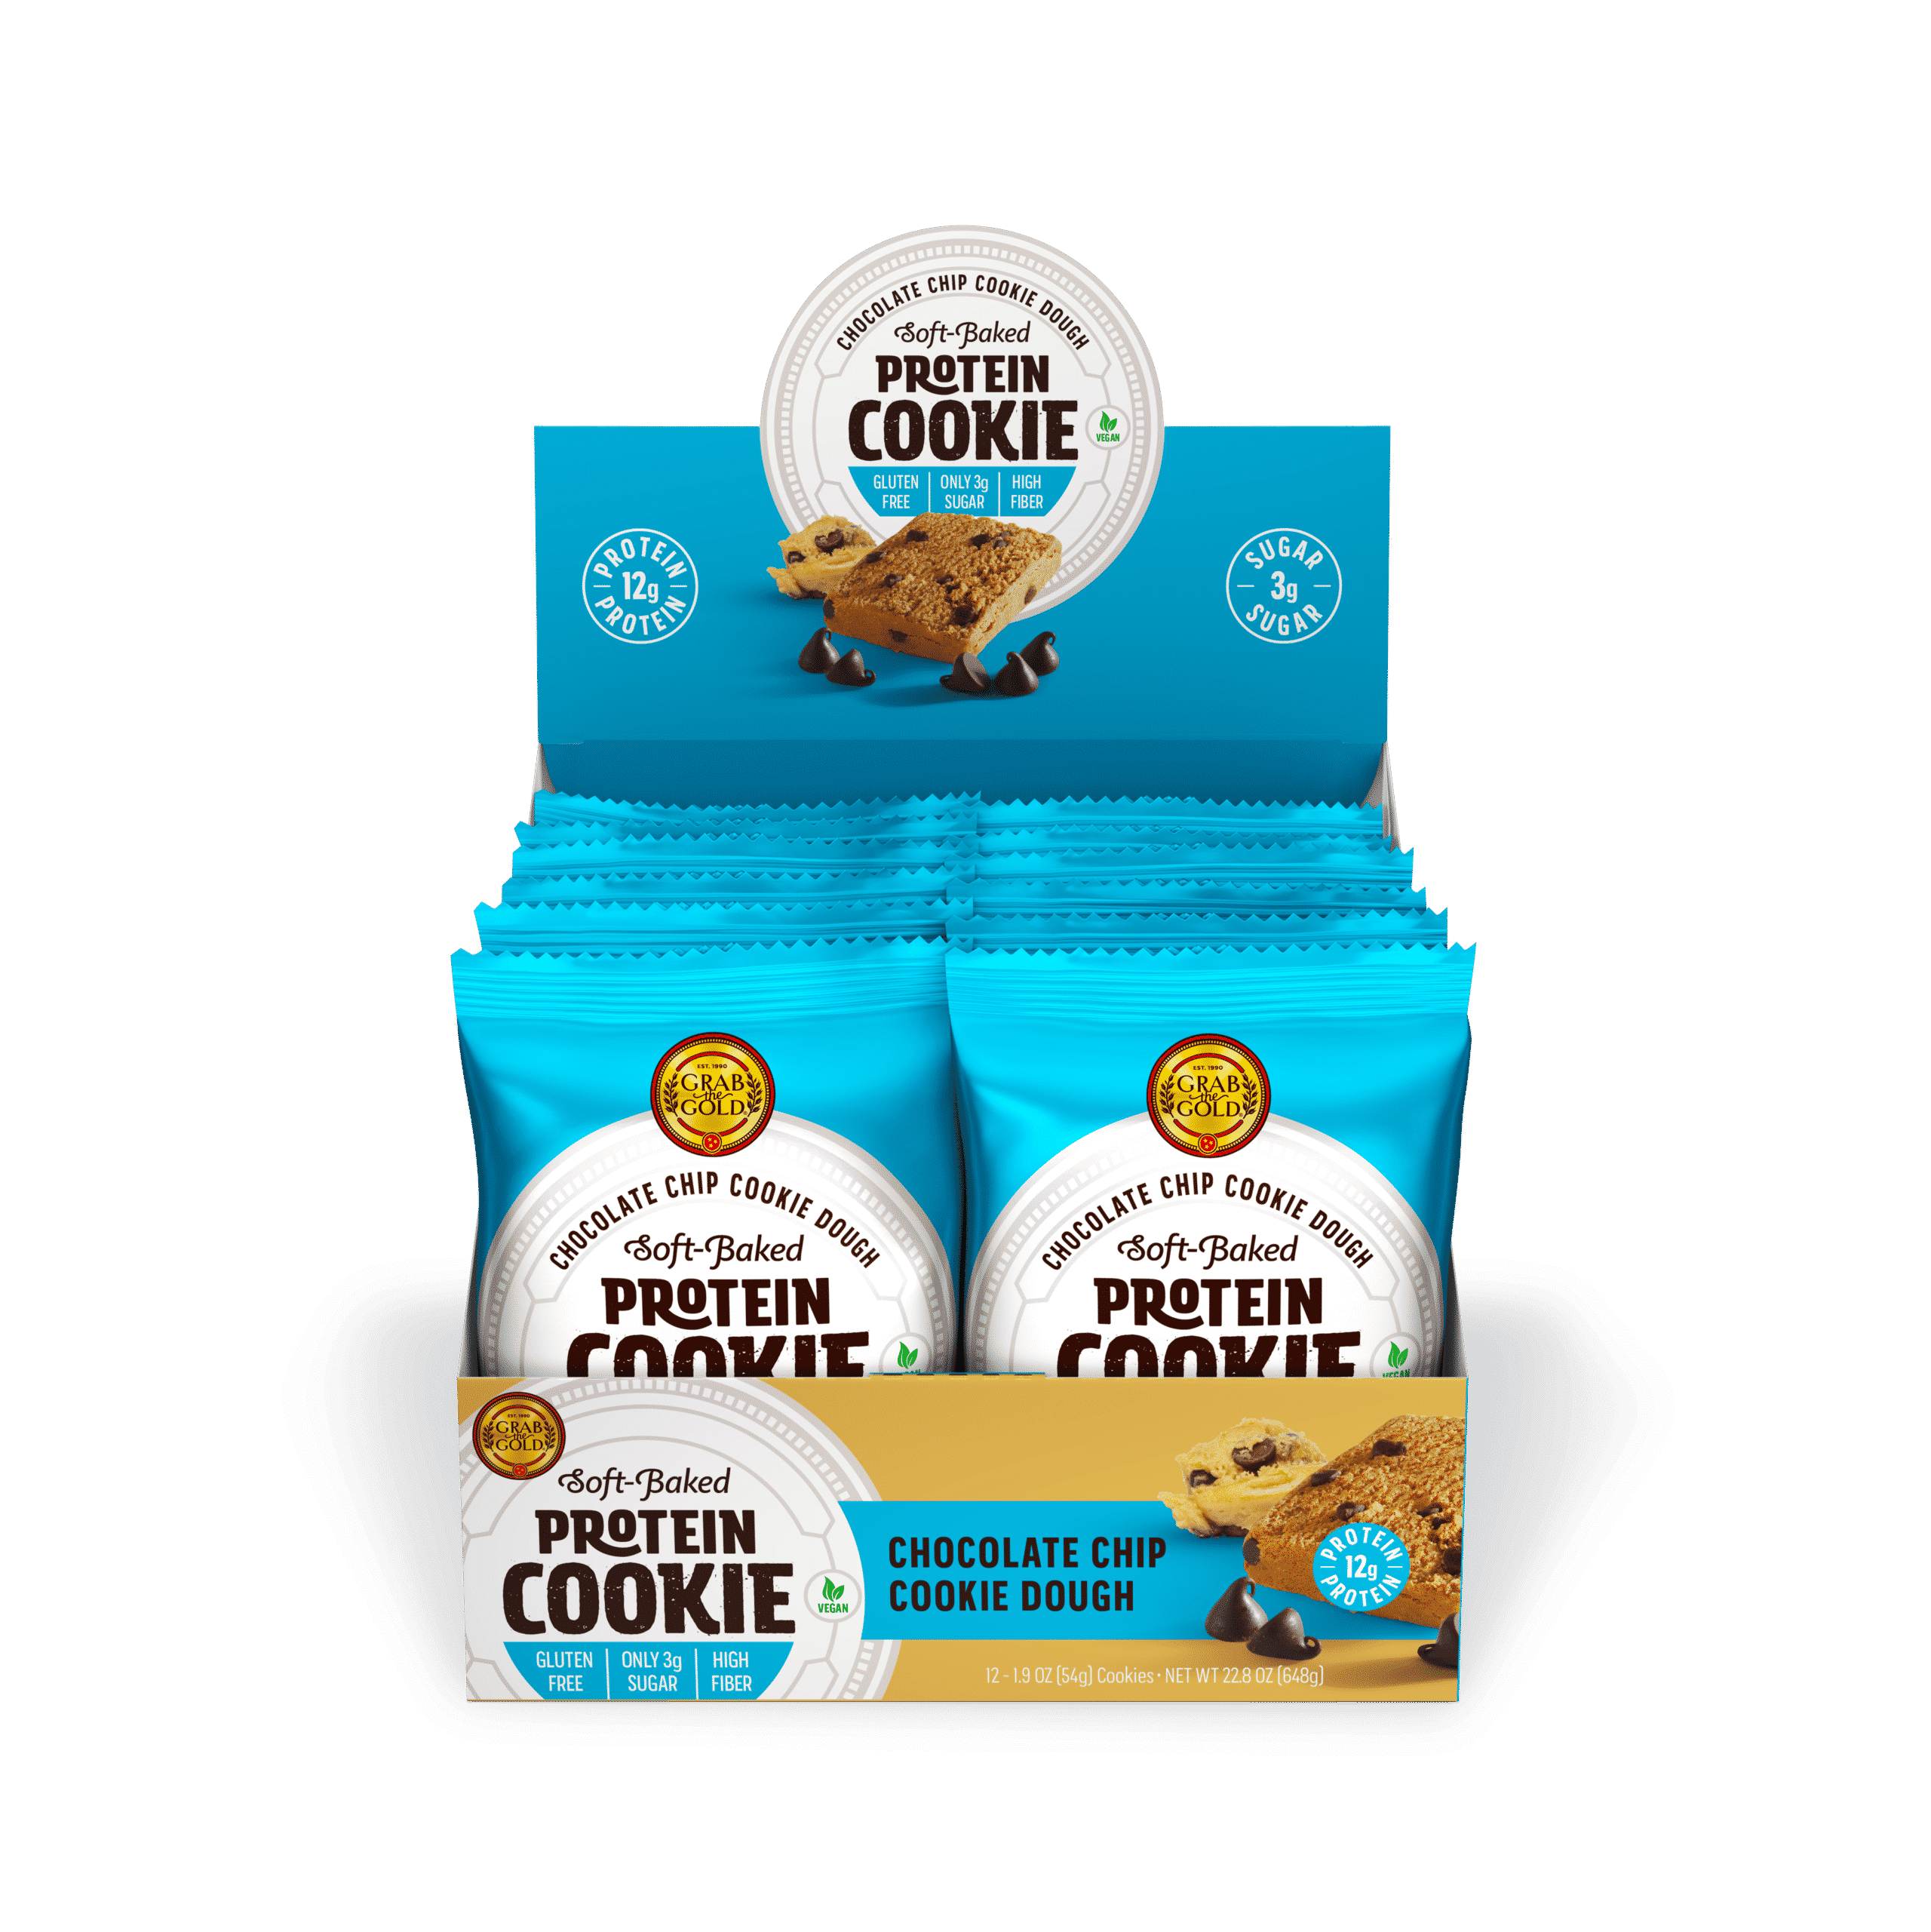 Grab The Gold Protein Cookie POS CCD Open Box 08.20